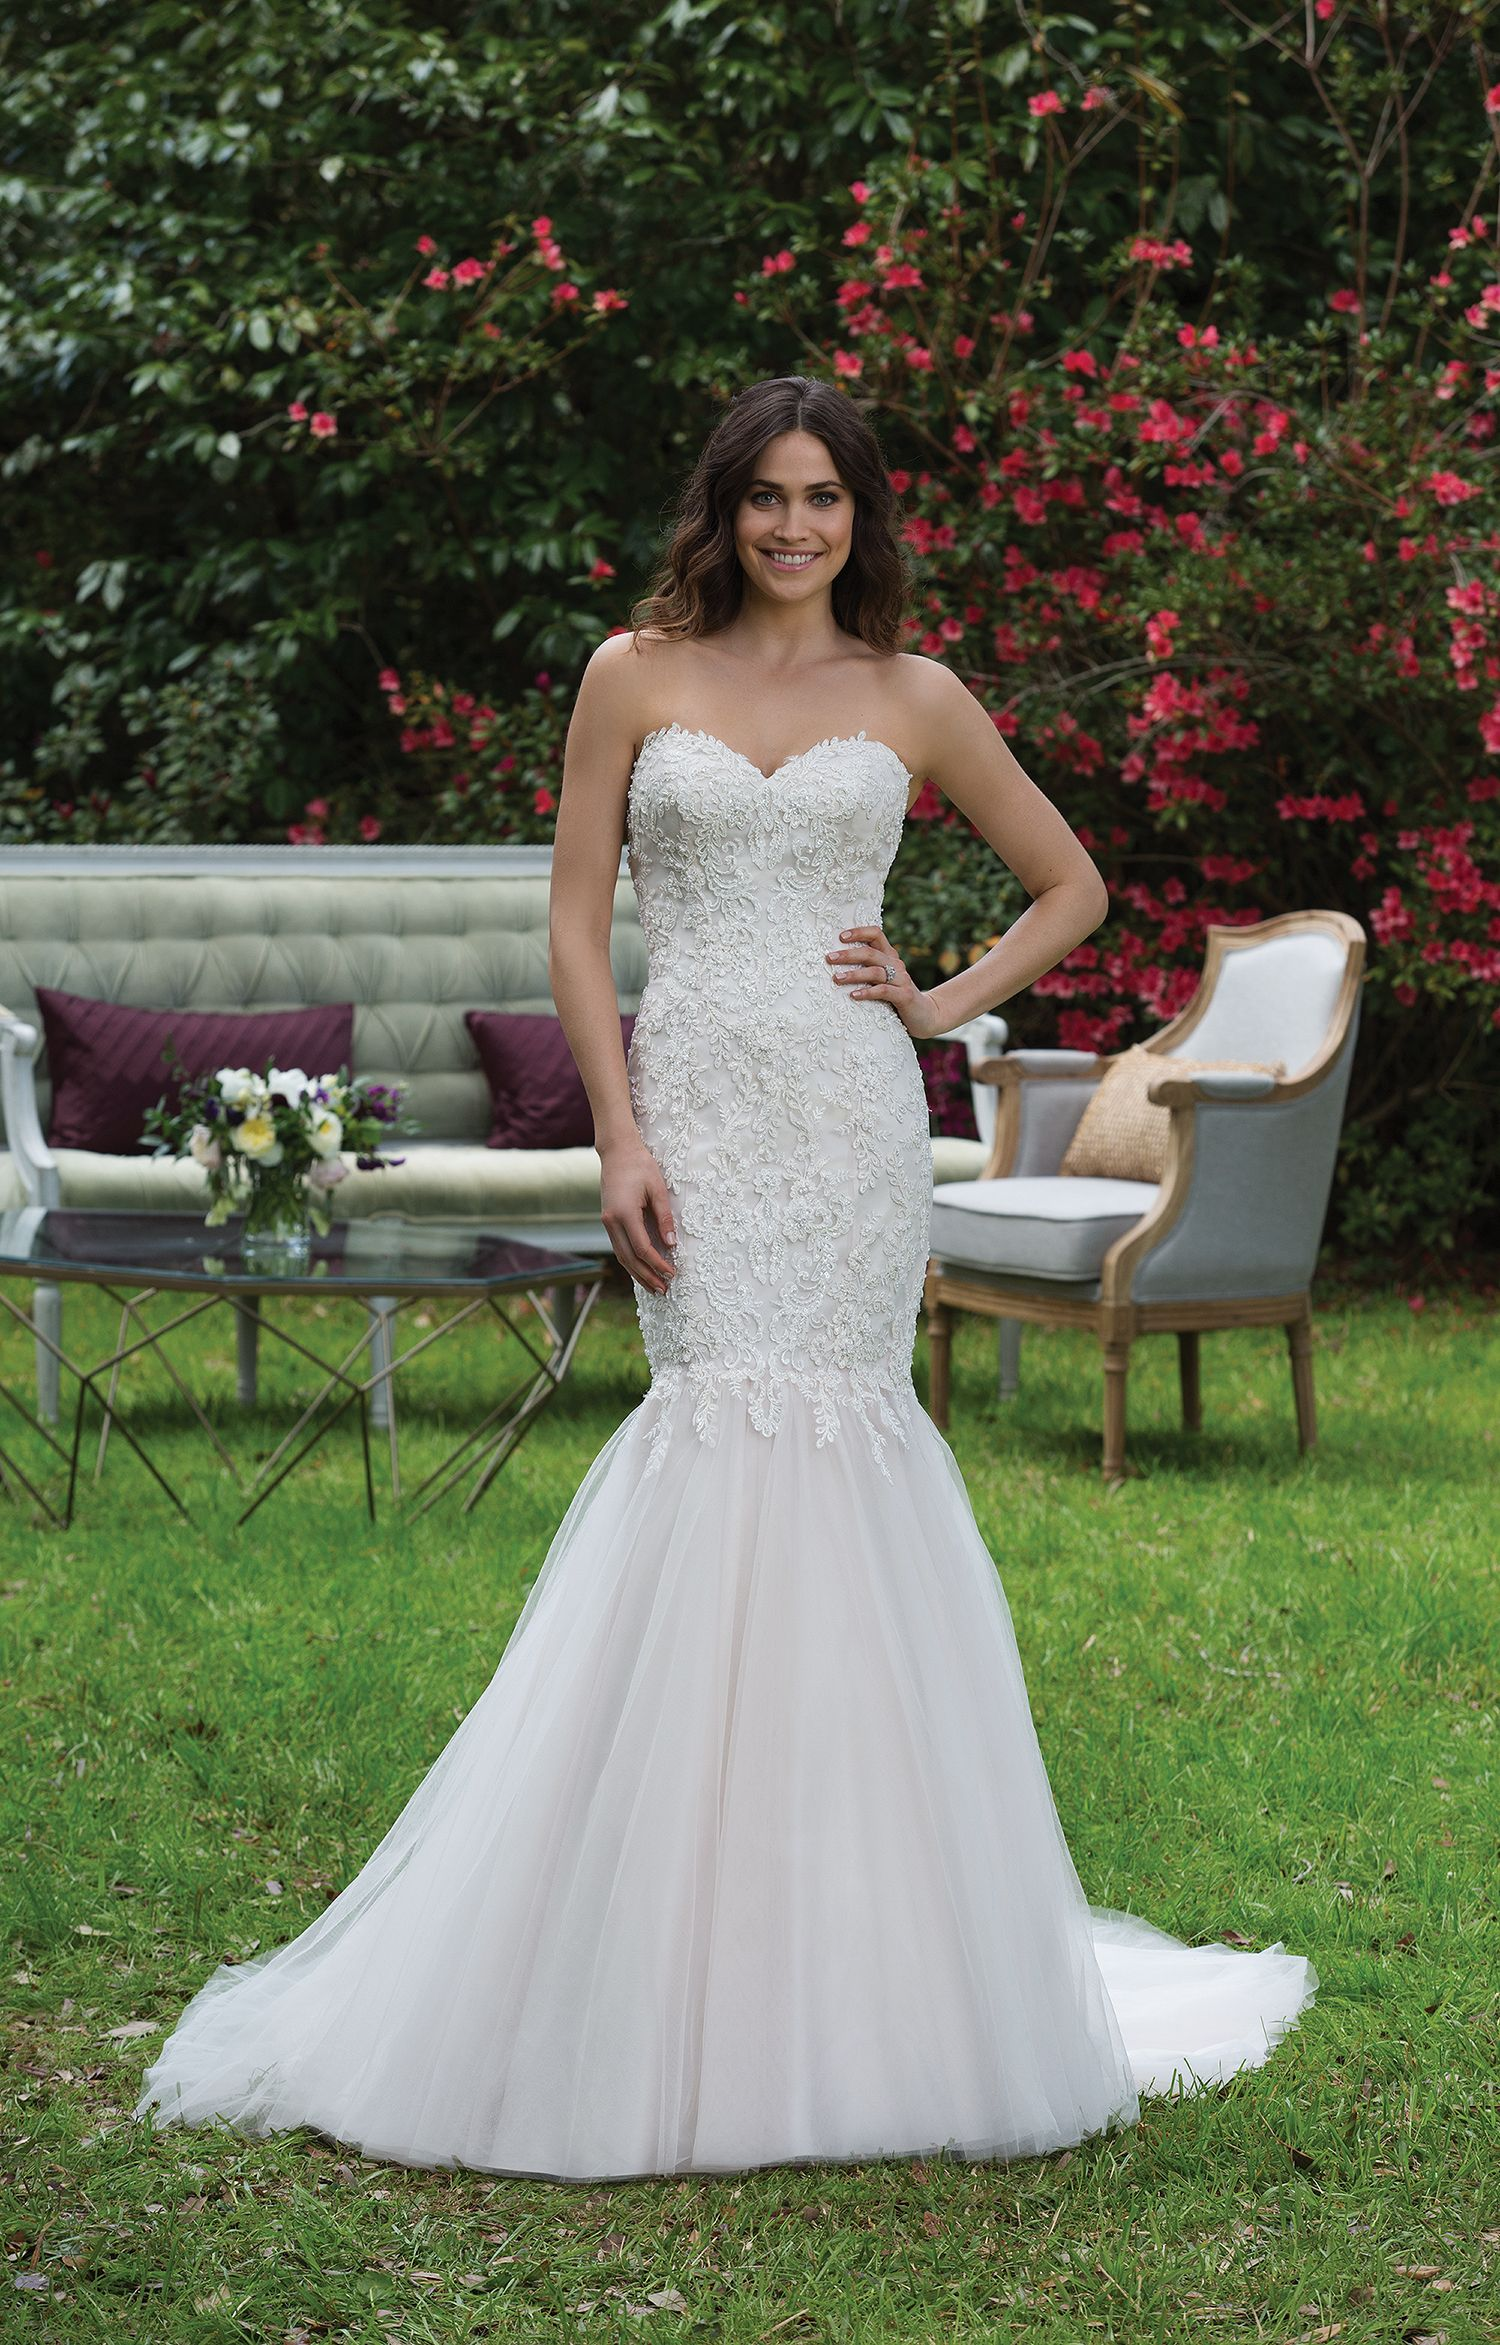 Dresses to wear at a wedding  Available at Adore Bridal Boutique orebridalga  Fairytale